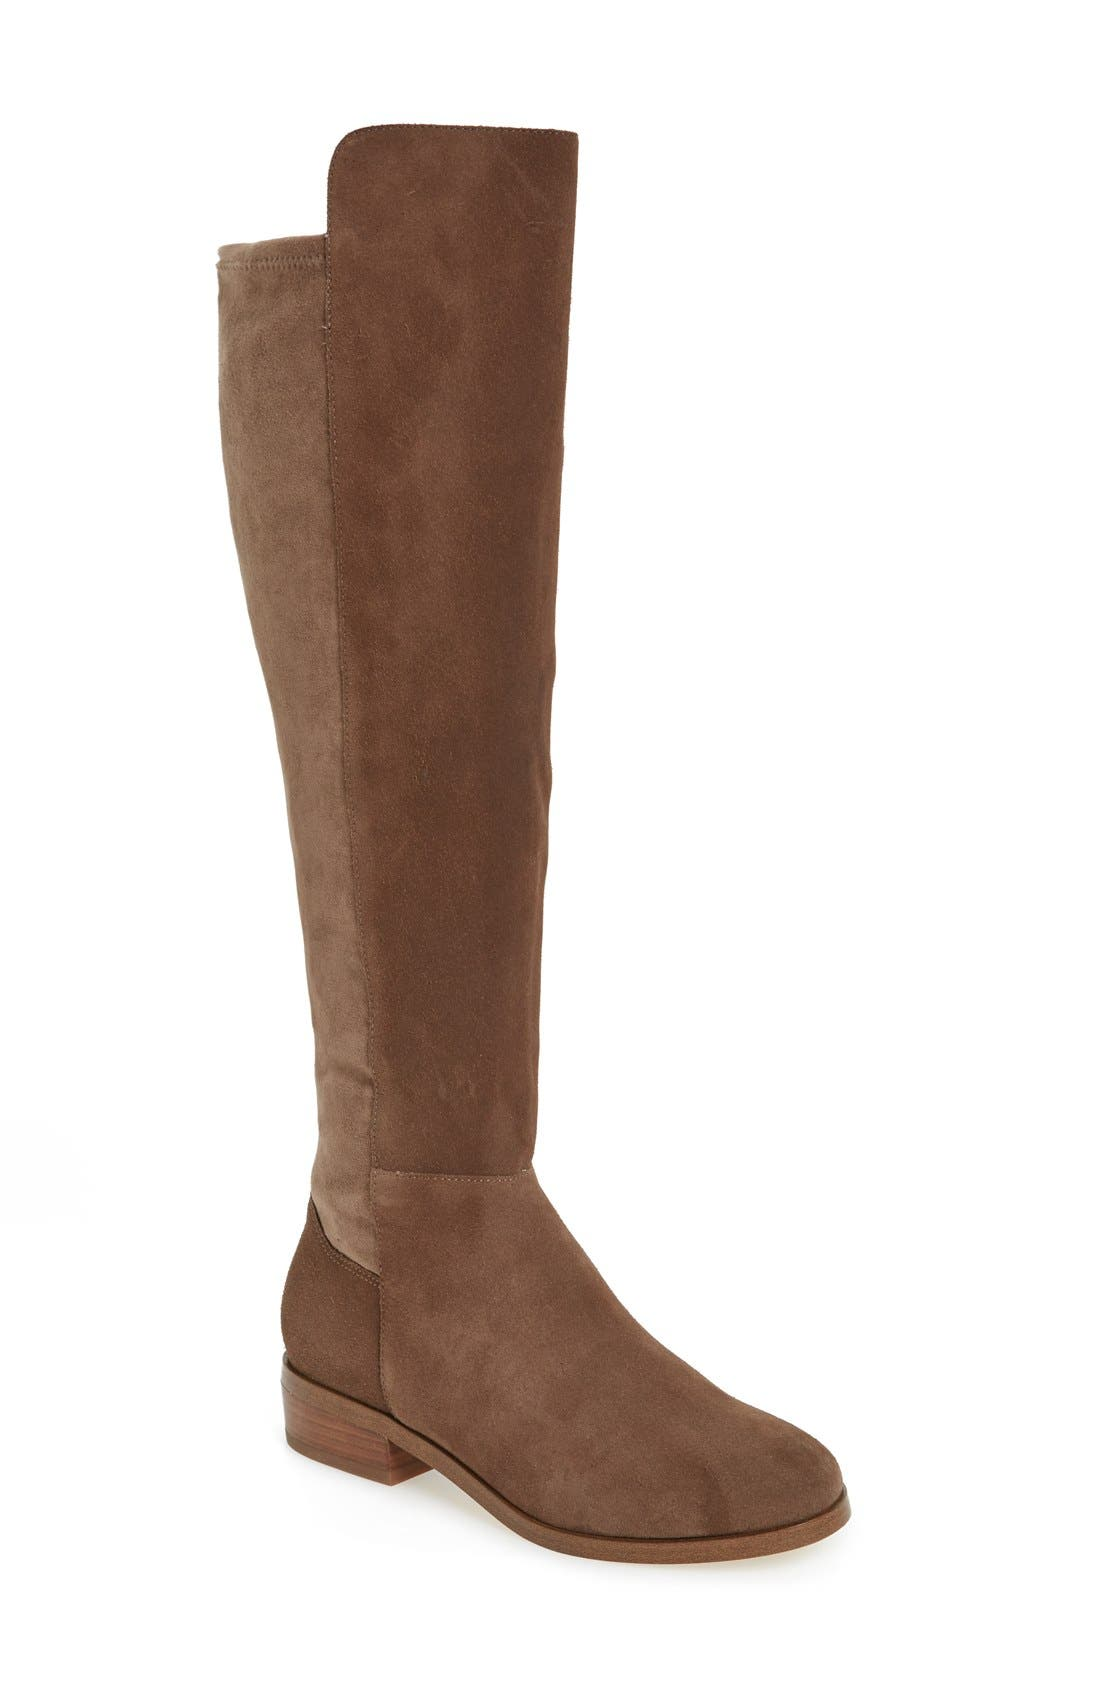 Calypso Over the Knee Boot,                         Main,                         color, Taupe Suede